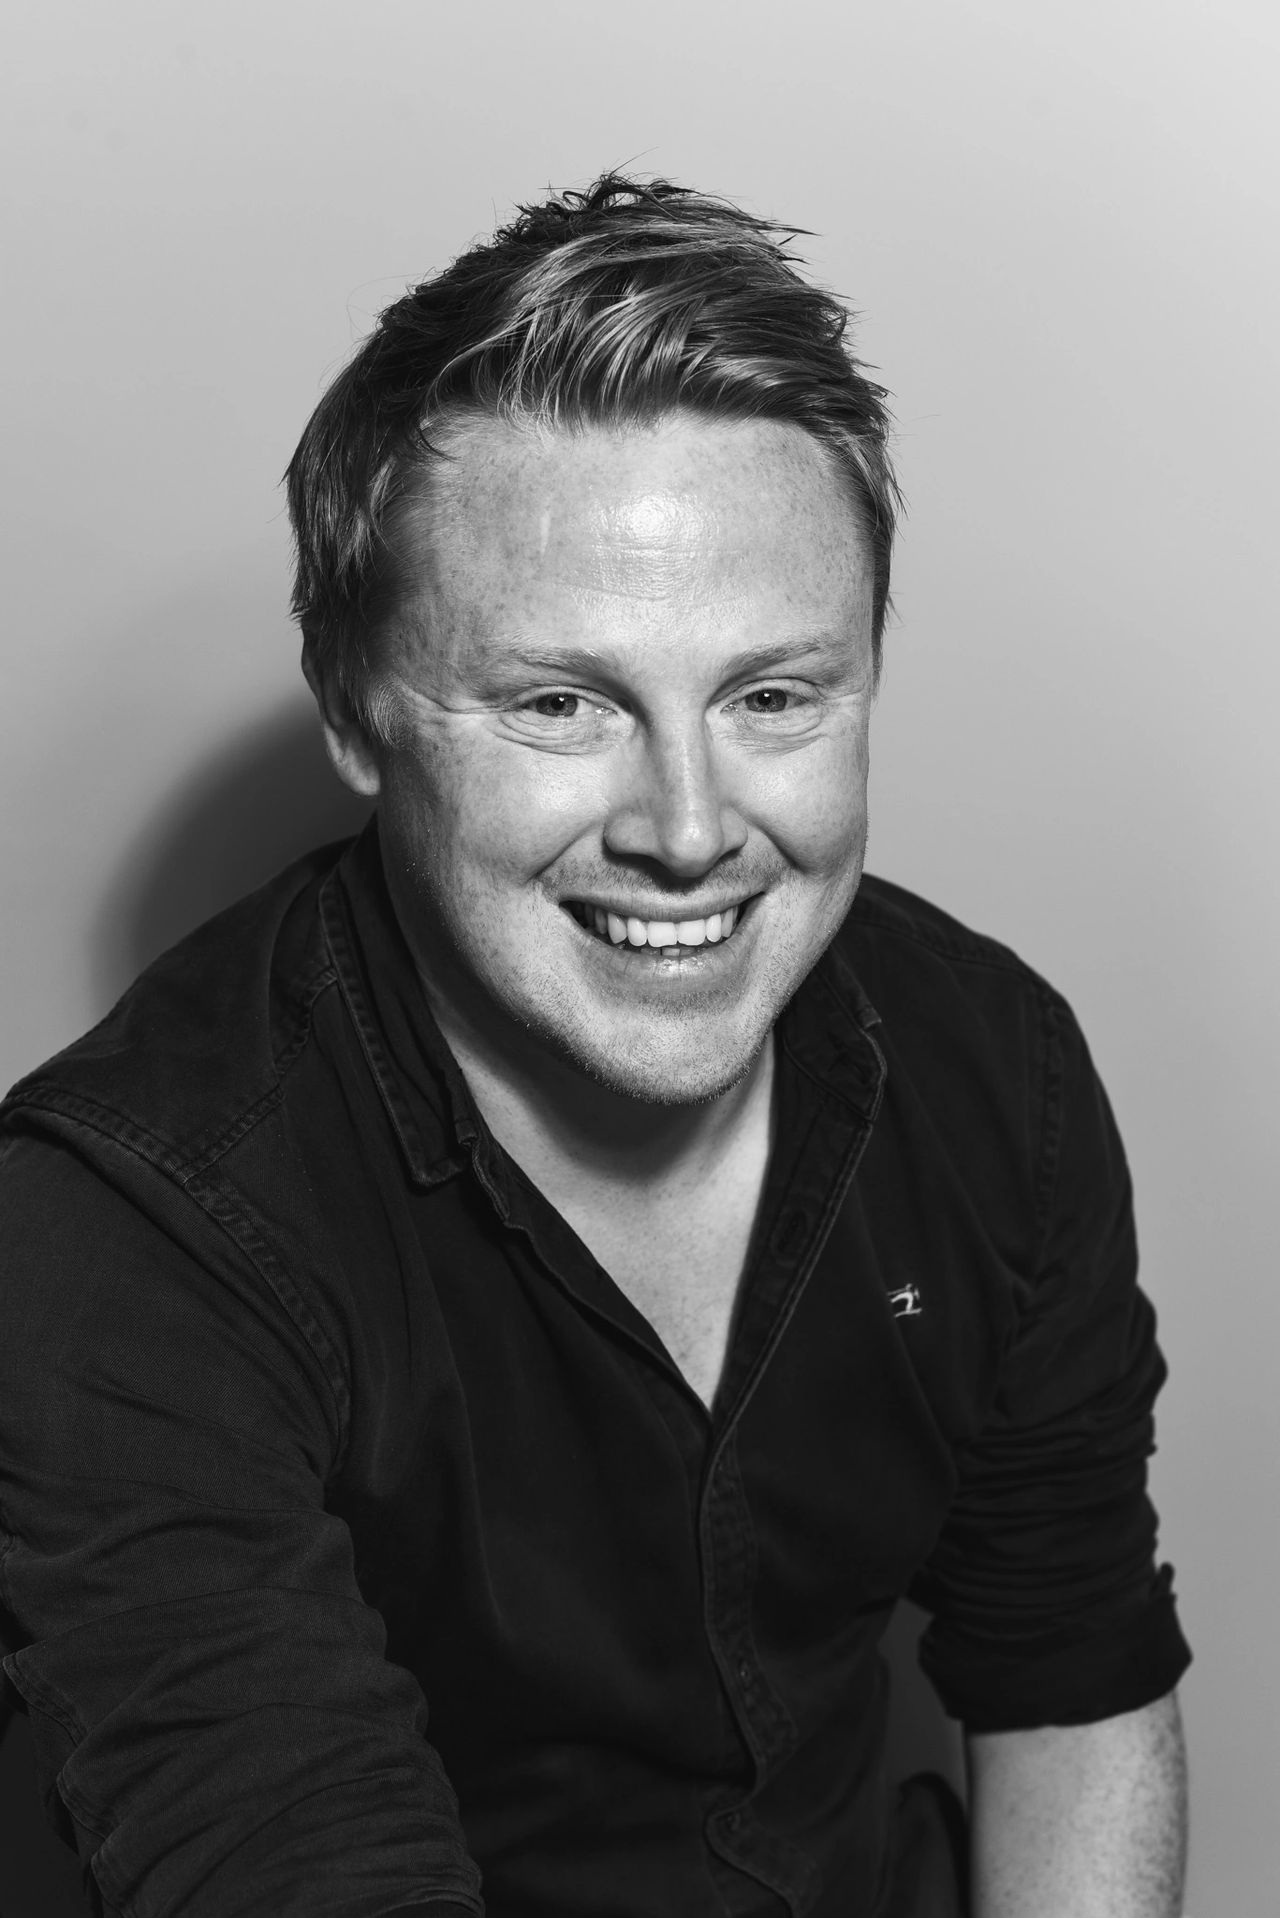 Meet the Successful Founder: Mark Haslam of Loud Mouth Media